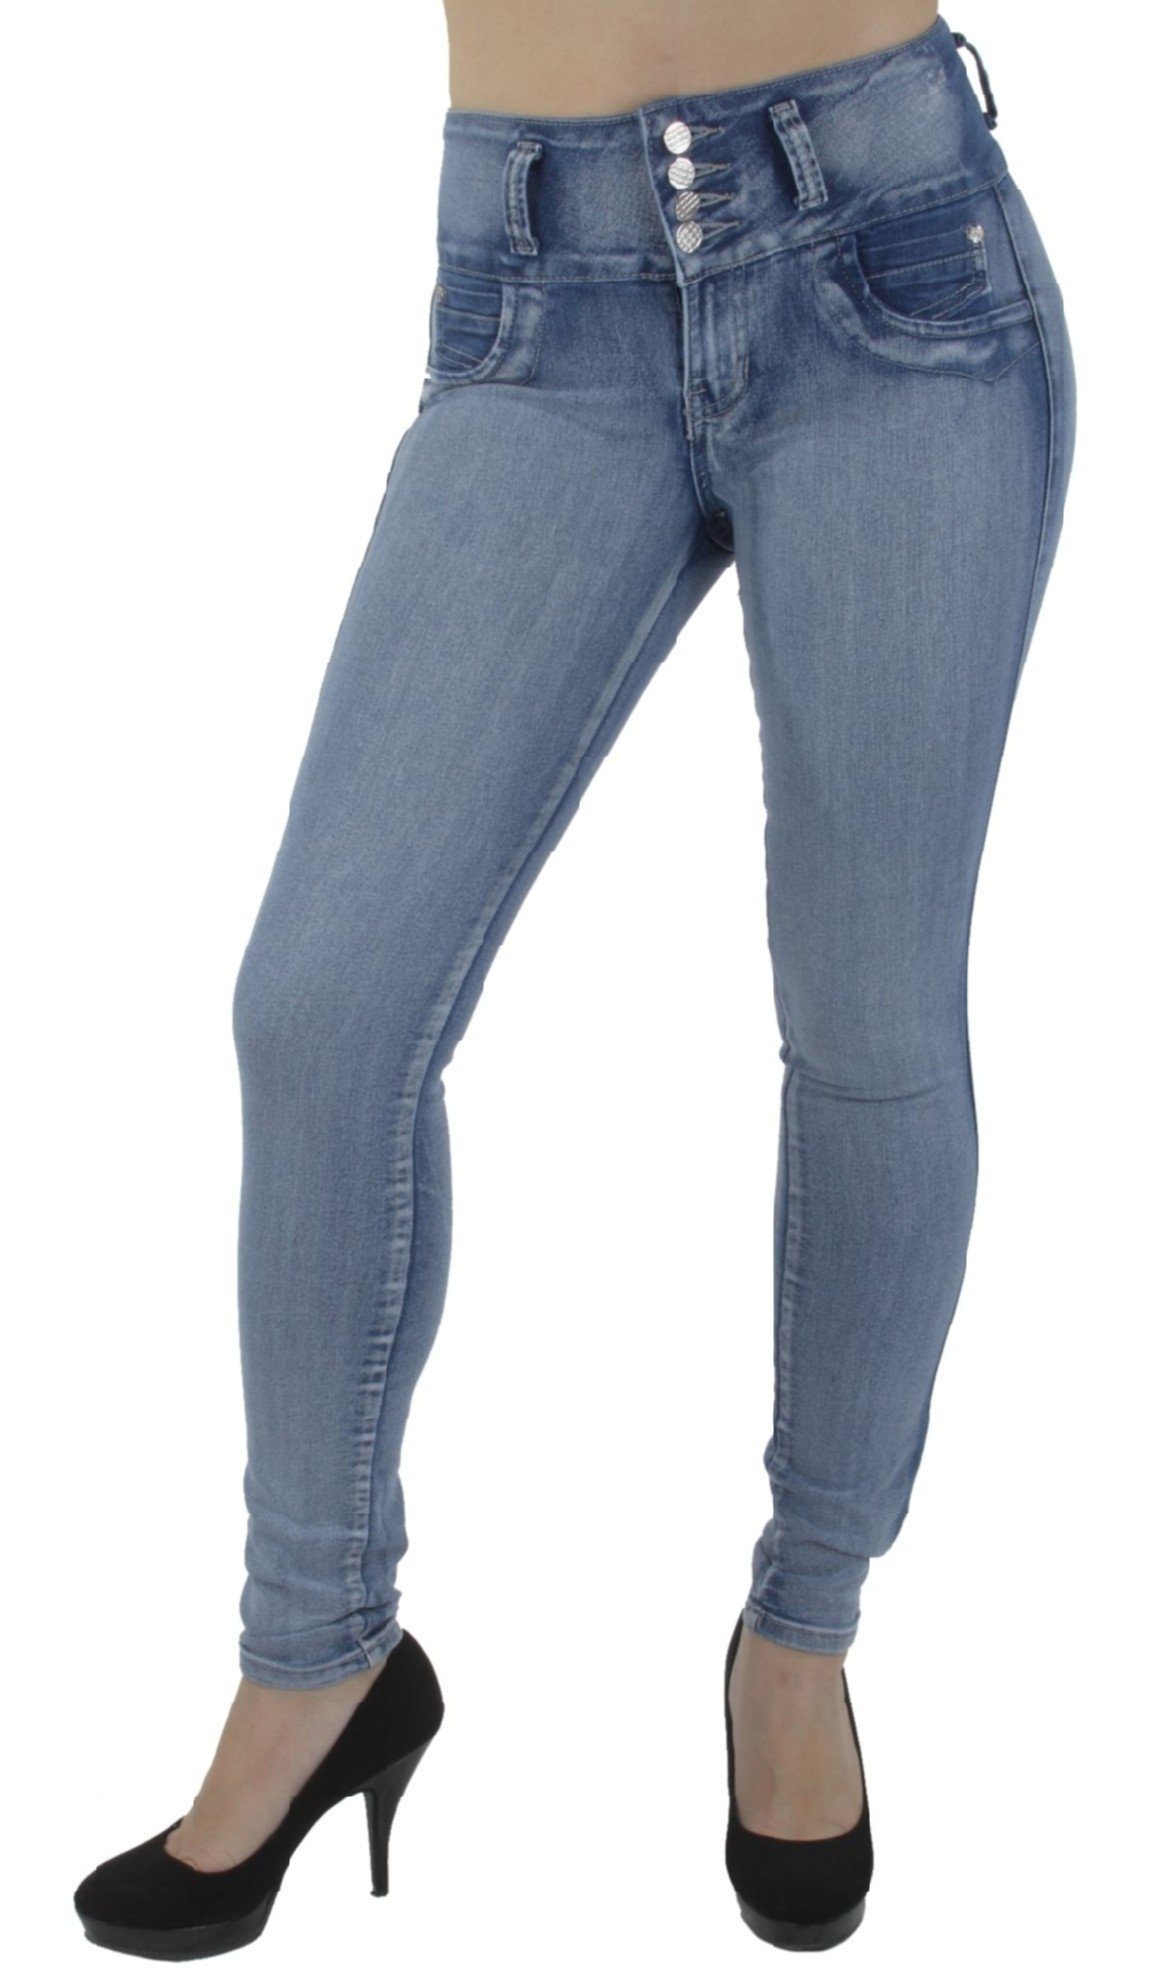 Style G208– Colombian Design, High Waist, Butt Lift, Levanta Cola, Skinny Jeans in M. Blue Size 1